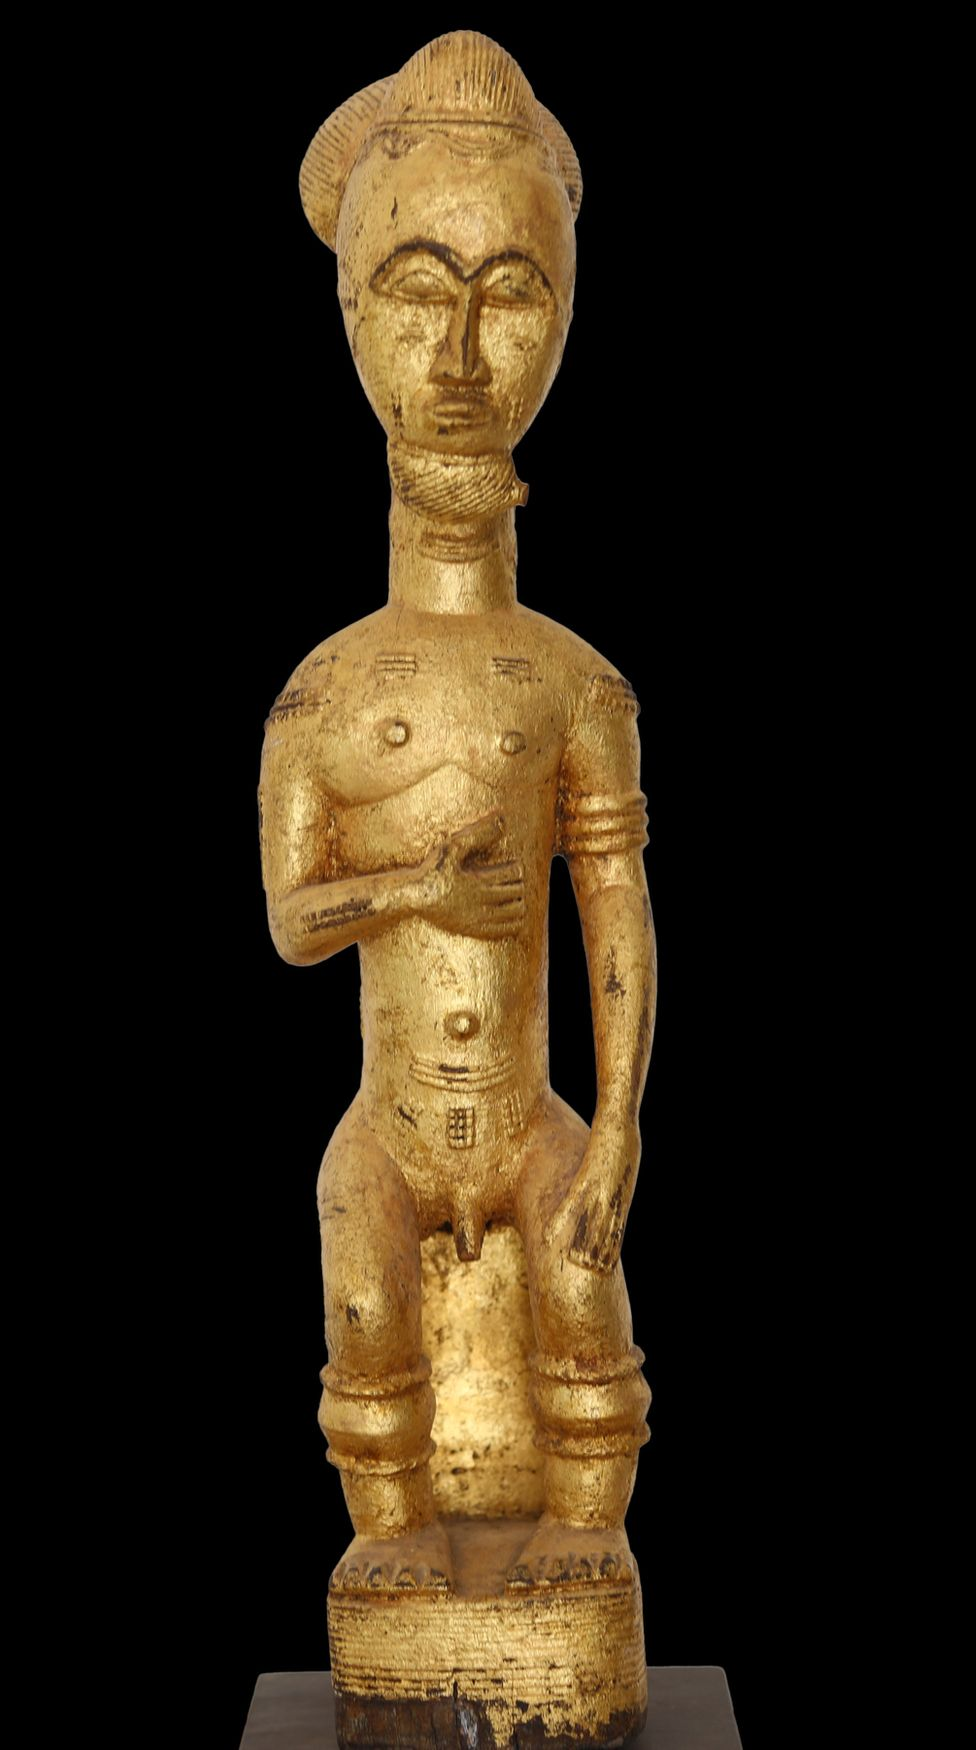 A gilded statue depicting a male figure